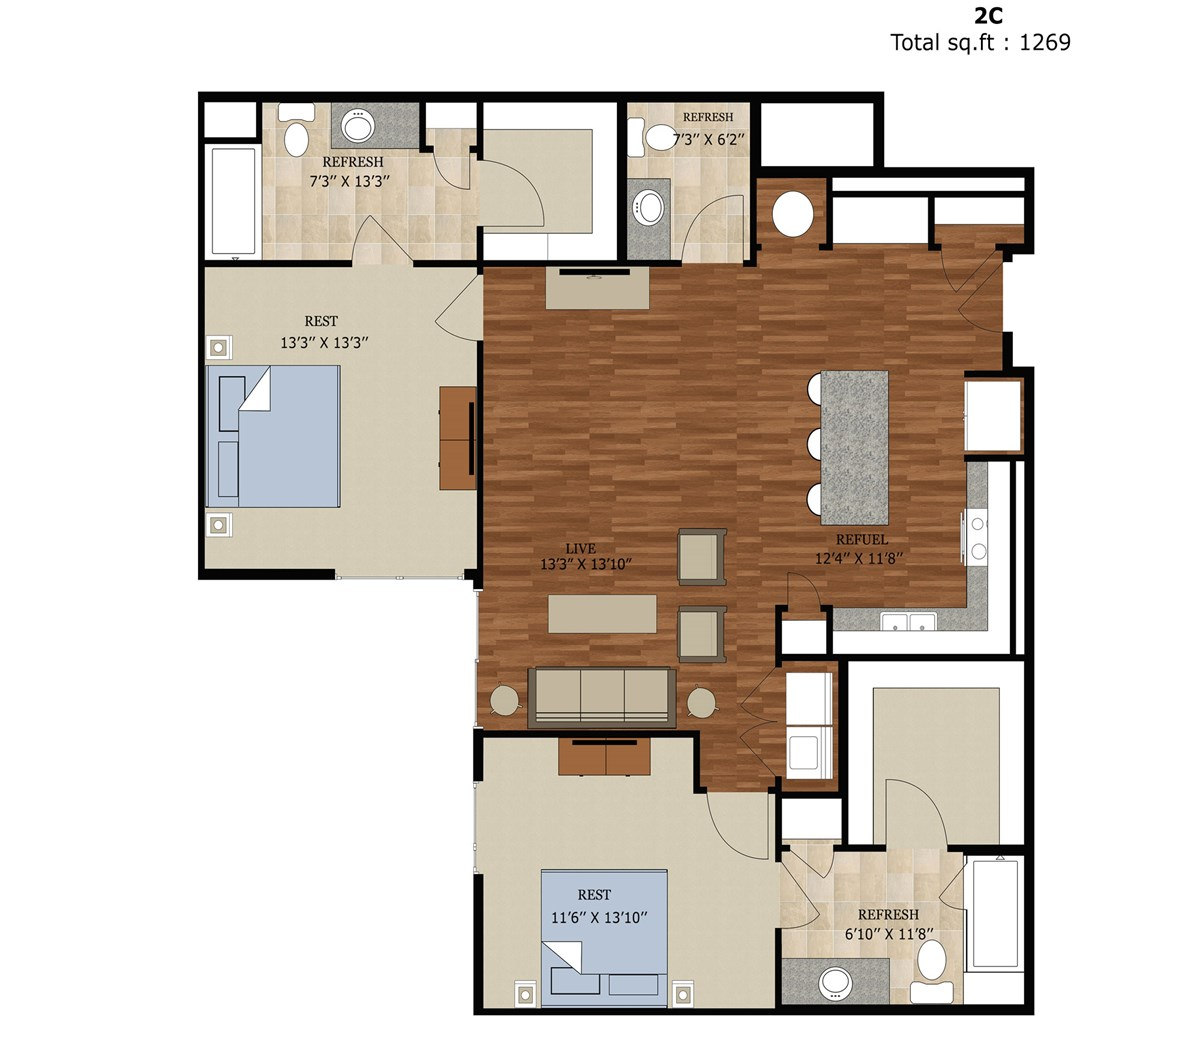 1,269 sq. ft. 2CANSI floor plan